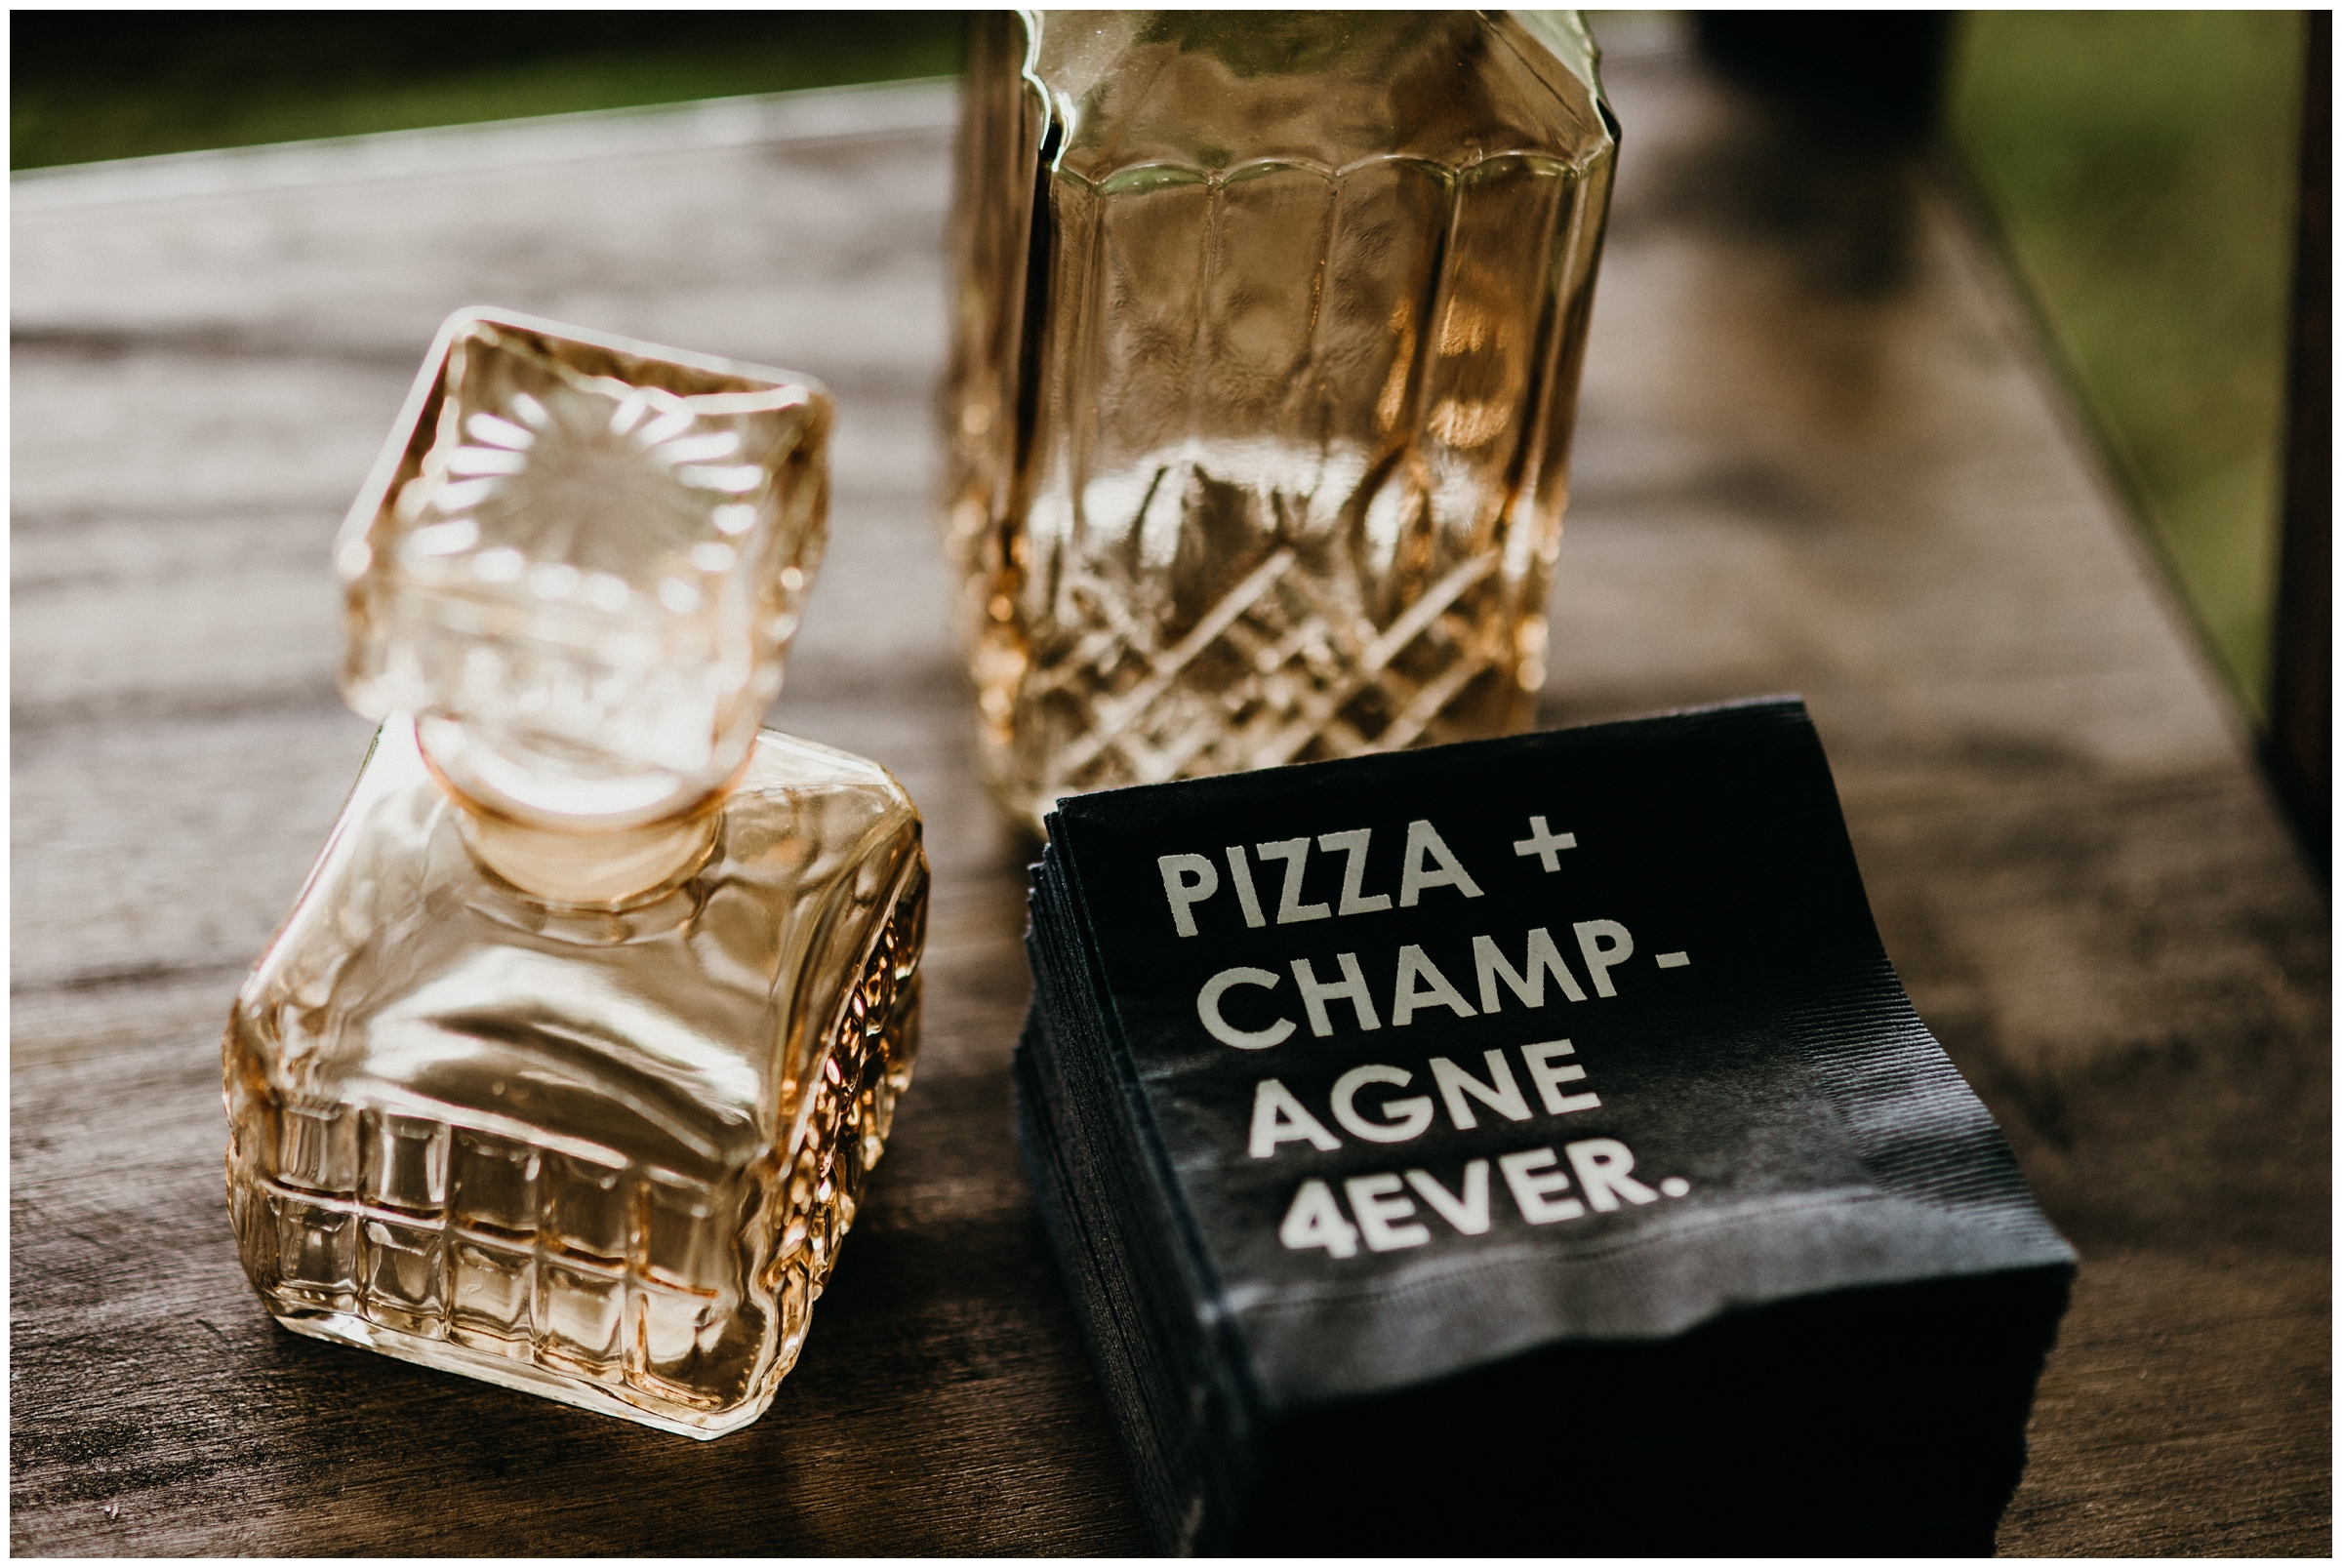 pizza + champagne 4ever napkin